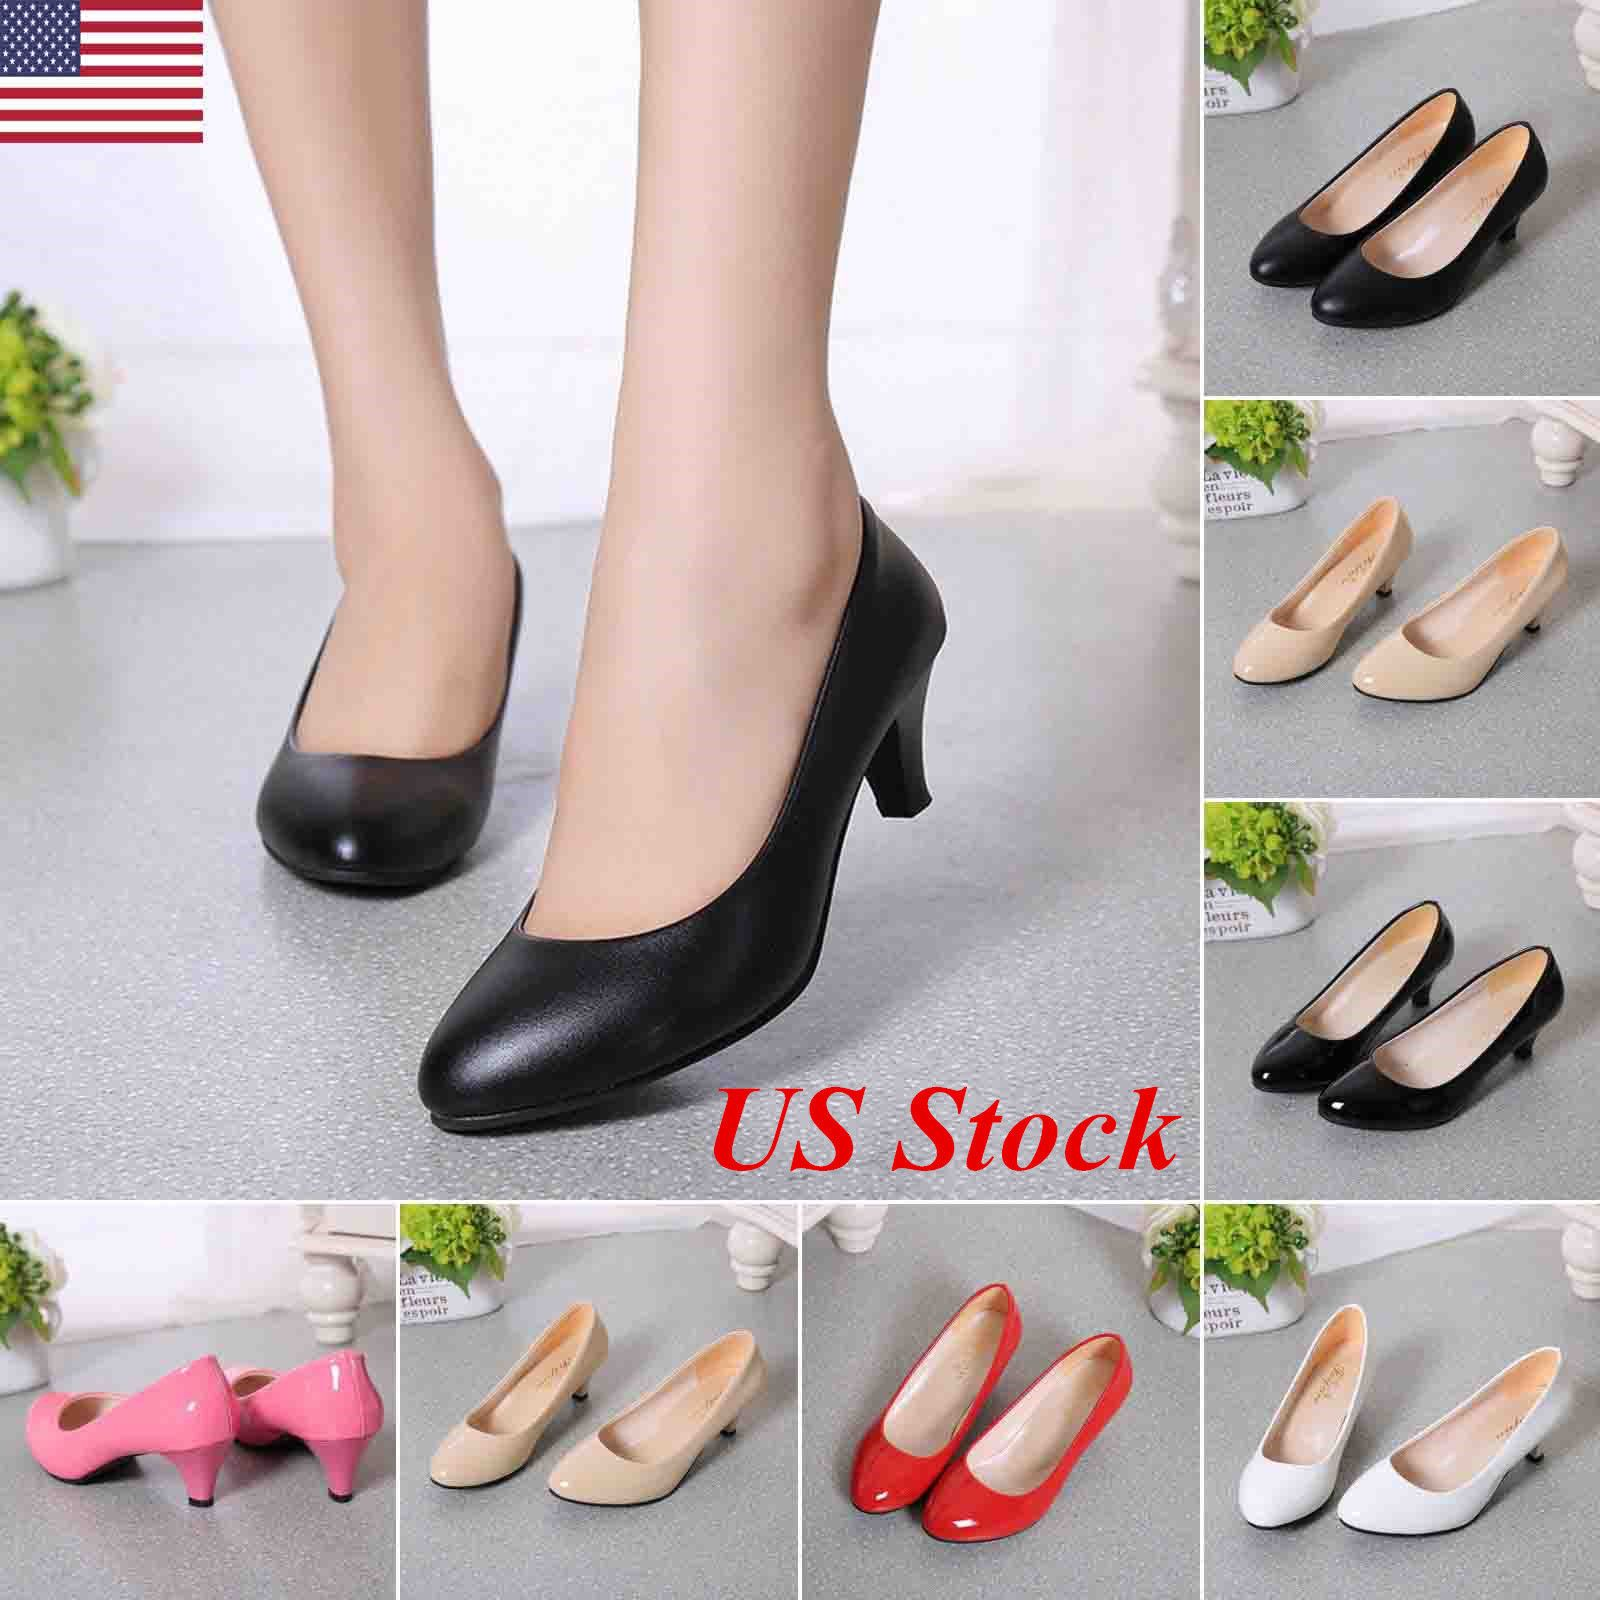 Low heel dress shoes for wedding  Awesome Awesome US Womens Low Mid High Heel Pointed Toe Pumps Work